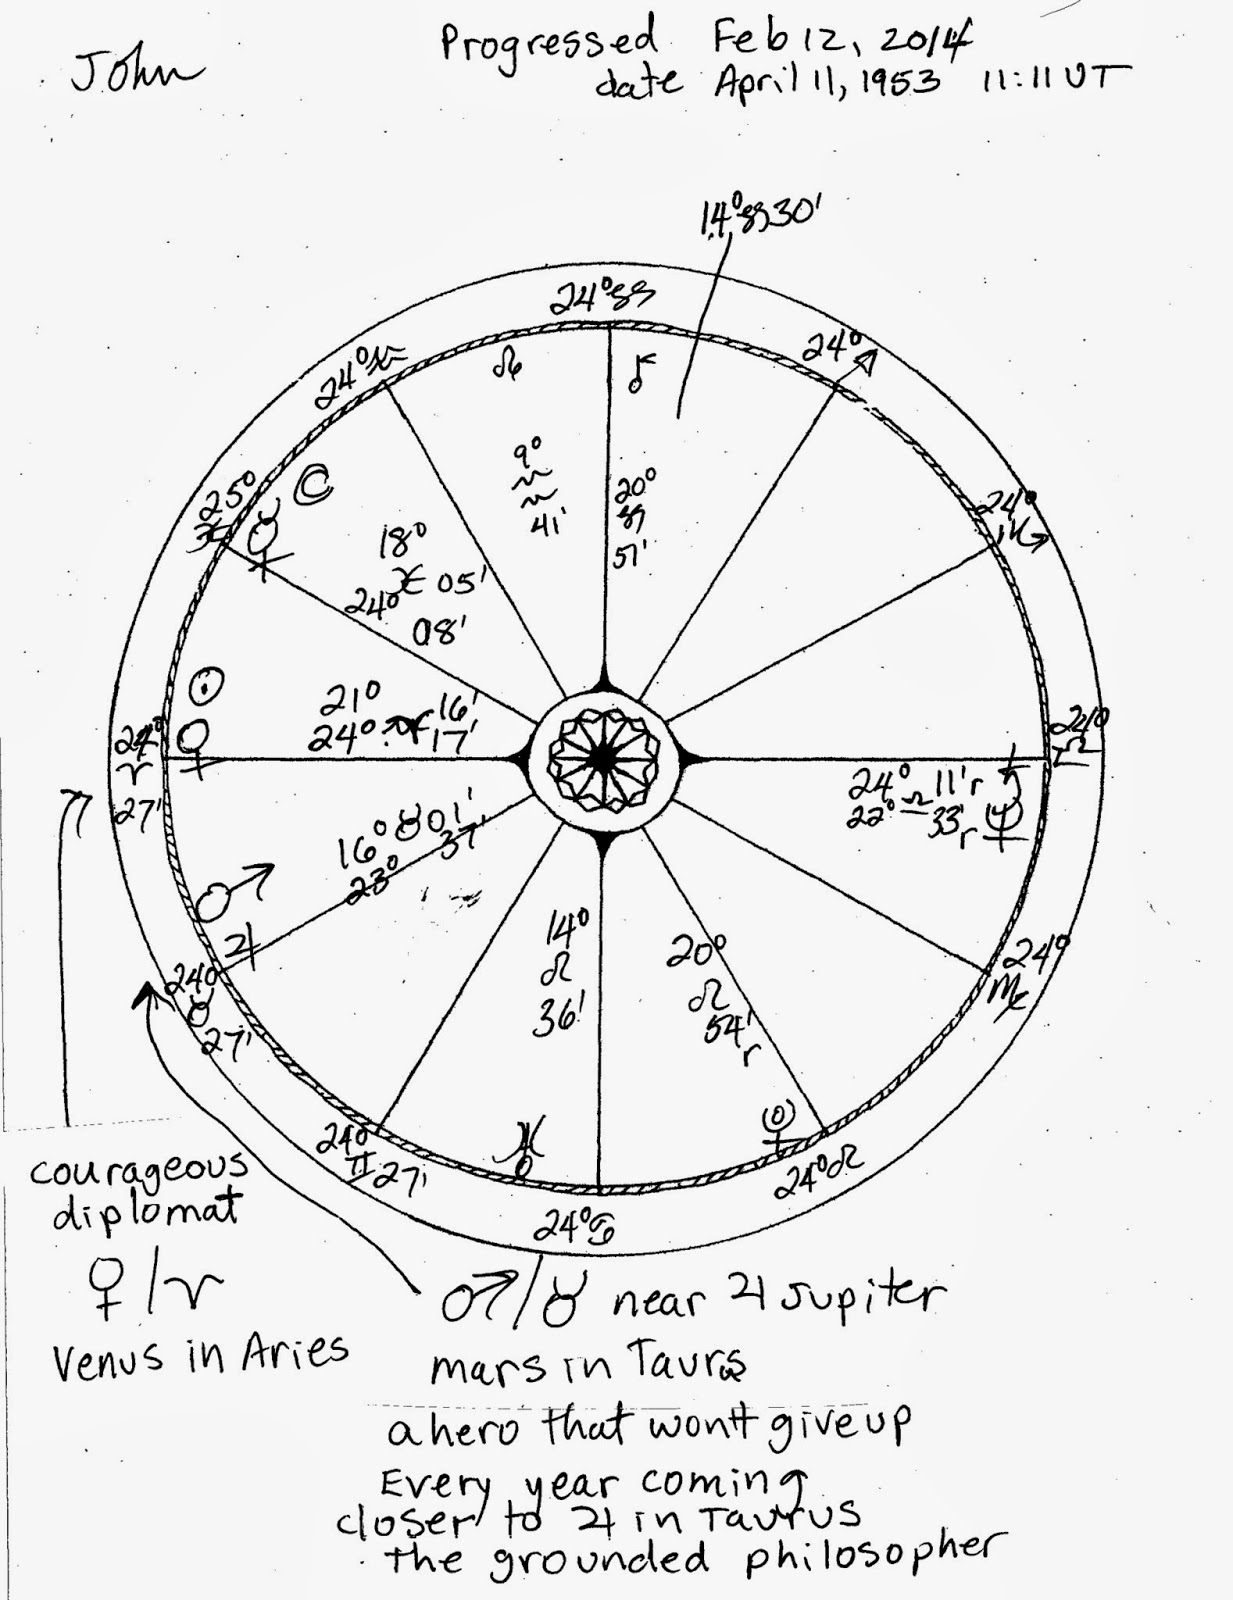 our sky astrology 02 01 2014 03 01 2014 Apothic Red Wine the progressed moon in pisces is about 18months into a 2 1 2 year period of swimming with the fishes in the wine dark sea